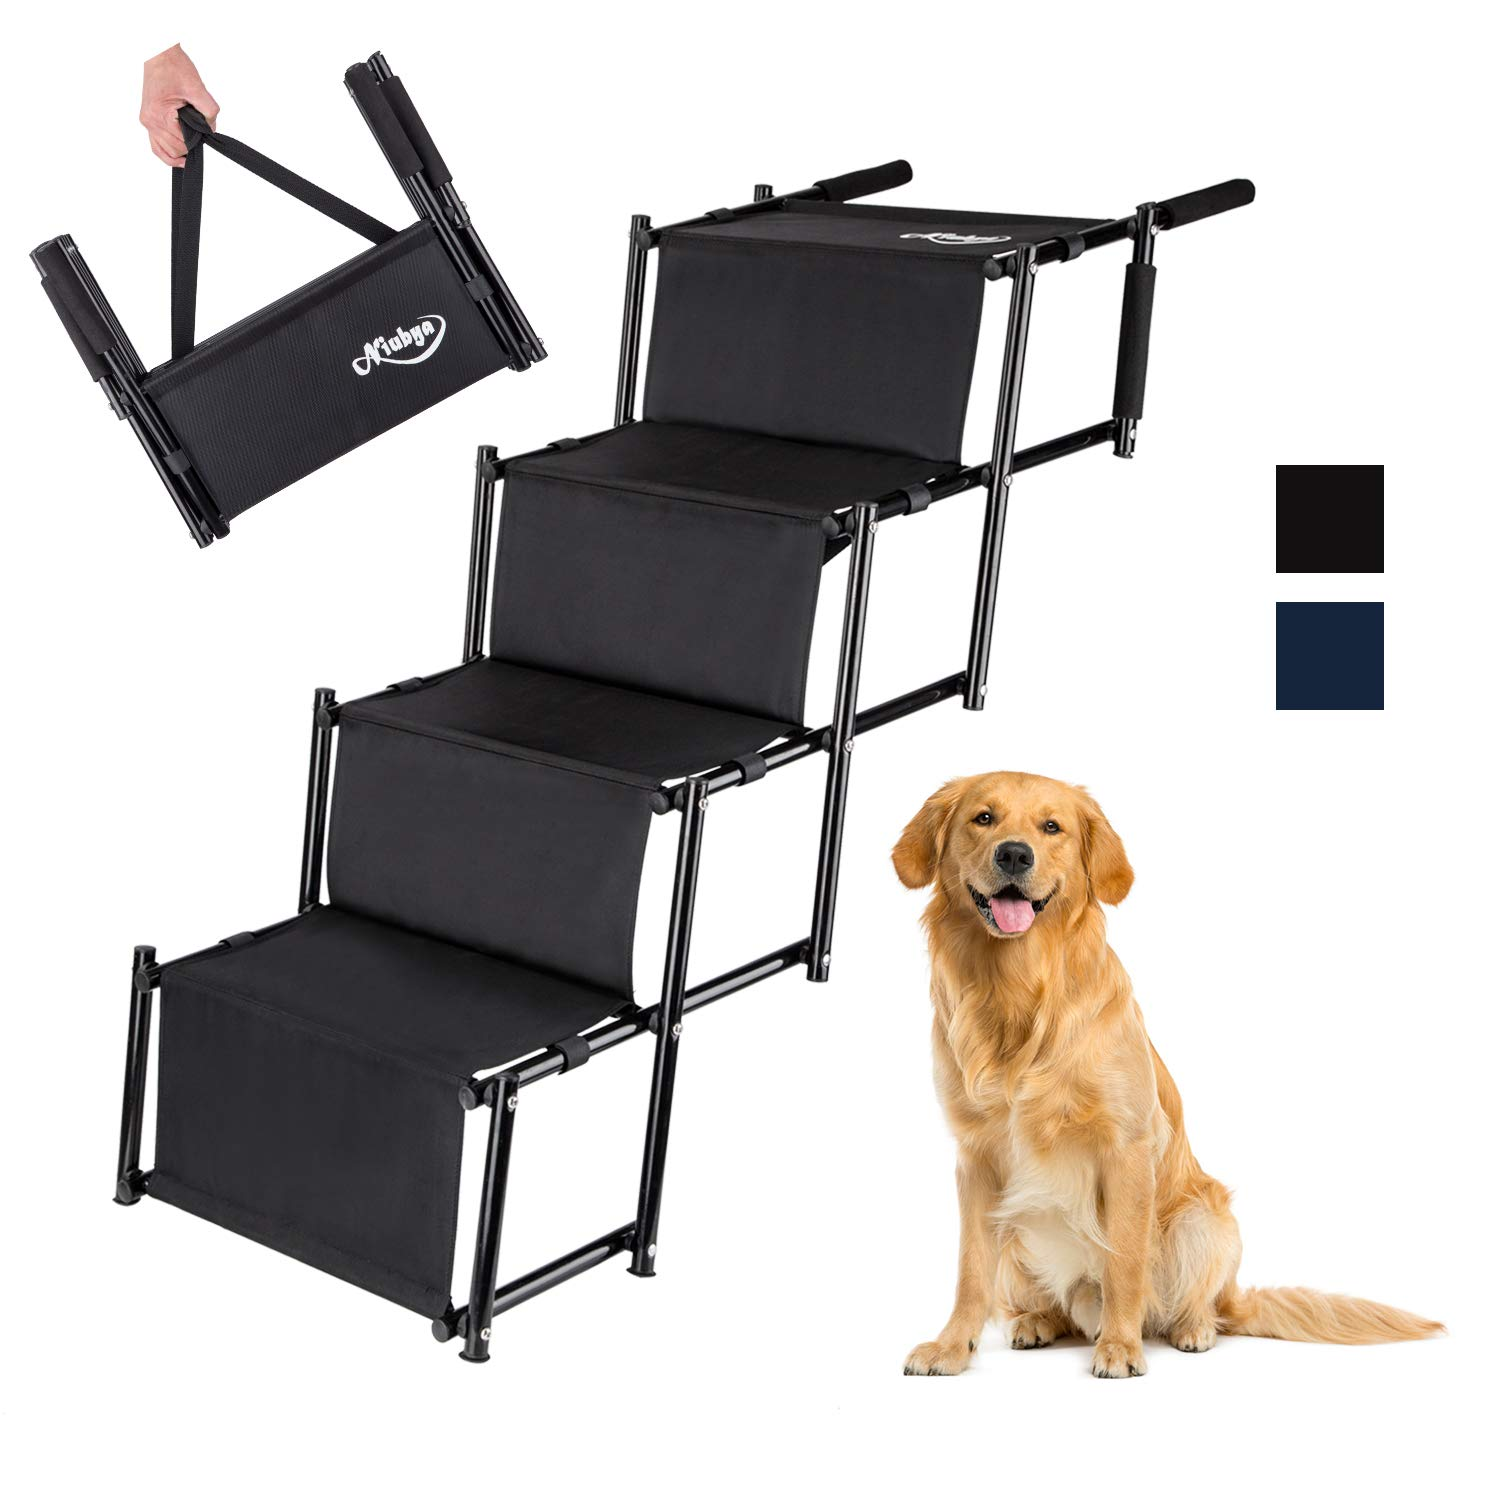 Niubya Folding Car Dog Steps Stairs, Lightweight Accordion Portable Rustproof Metal Frame 4 Pet Steps Ladder with Durable Waterproof Ballistic Nylon, Great for Car, Truck, SUV and High Bed, Black